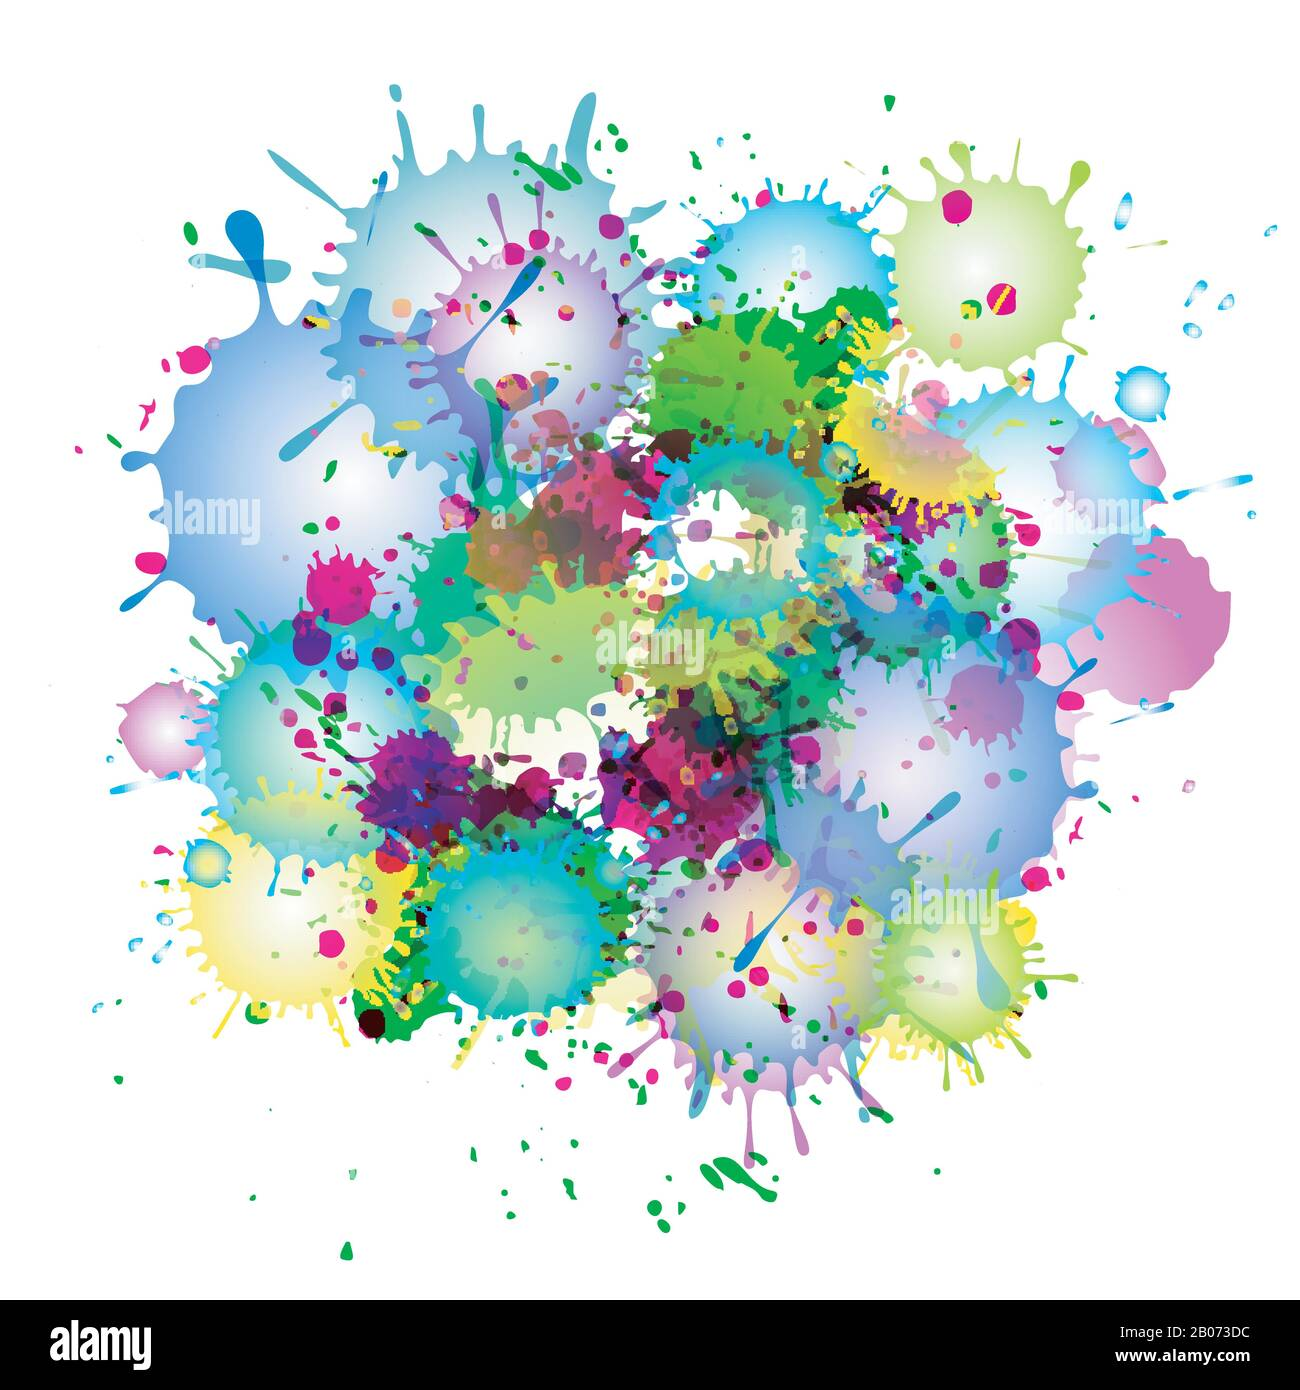 Multicolored watercolor paint splatters vector abstract background. Colorful abstract stain illustration Stock Vector